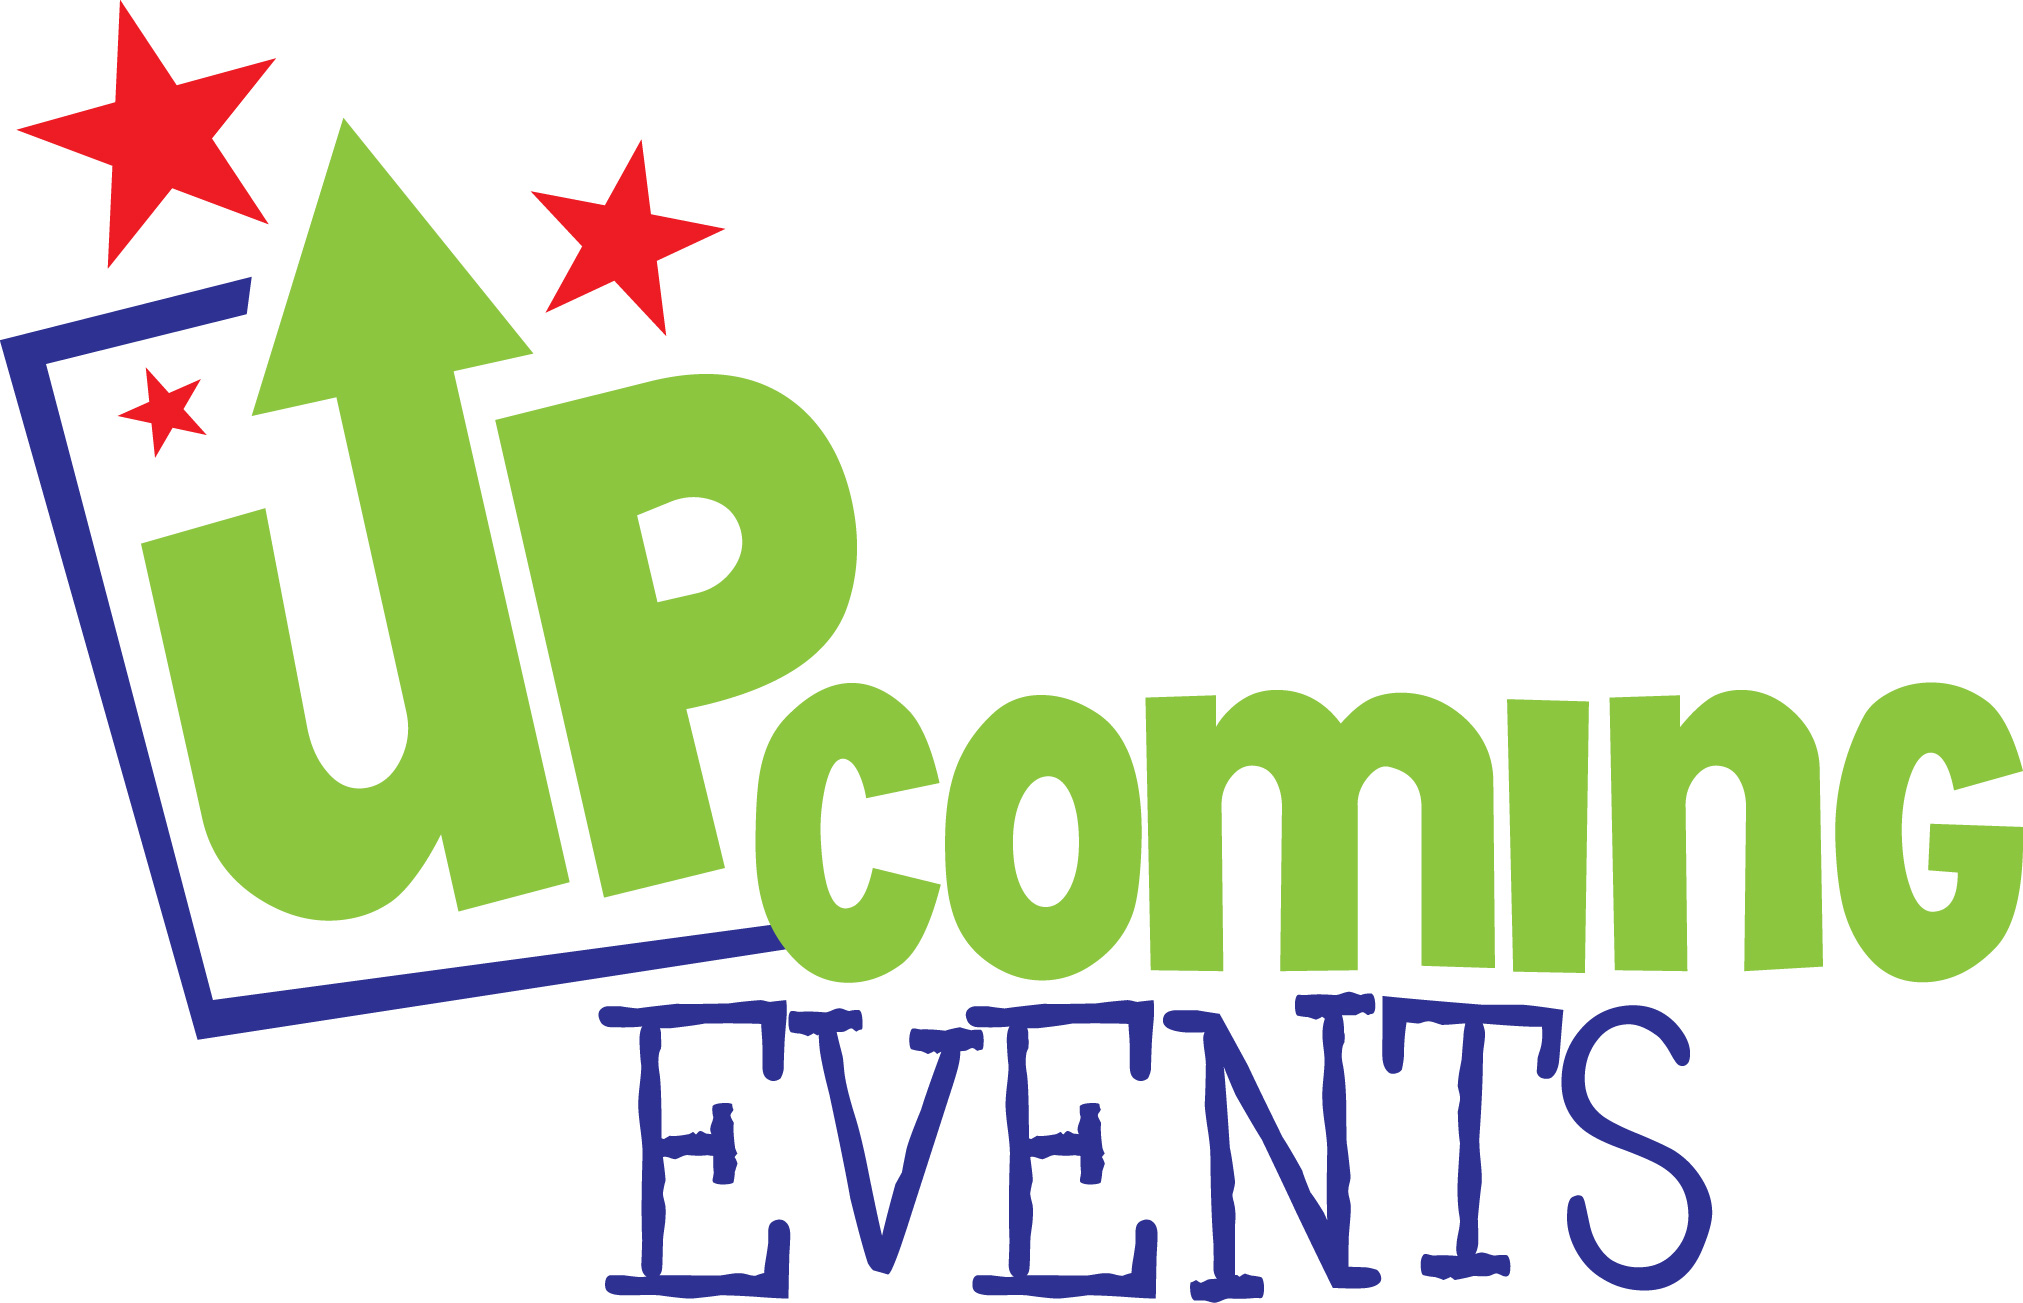 Upcoming Events Clip Art & Upcoming Events Clip Art Clip Art.